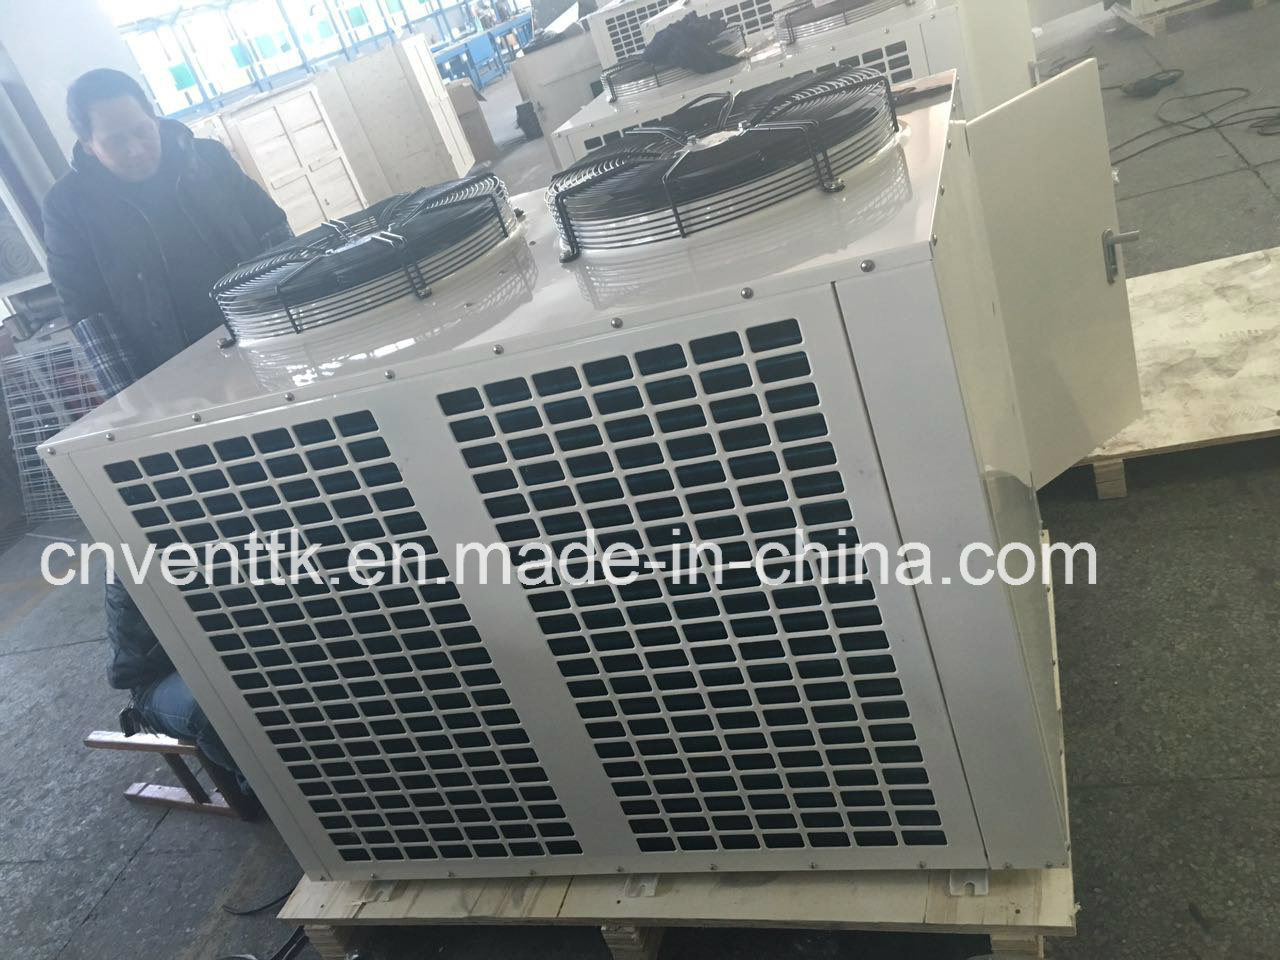 Box Type Copeland Compressor Condenser Units